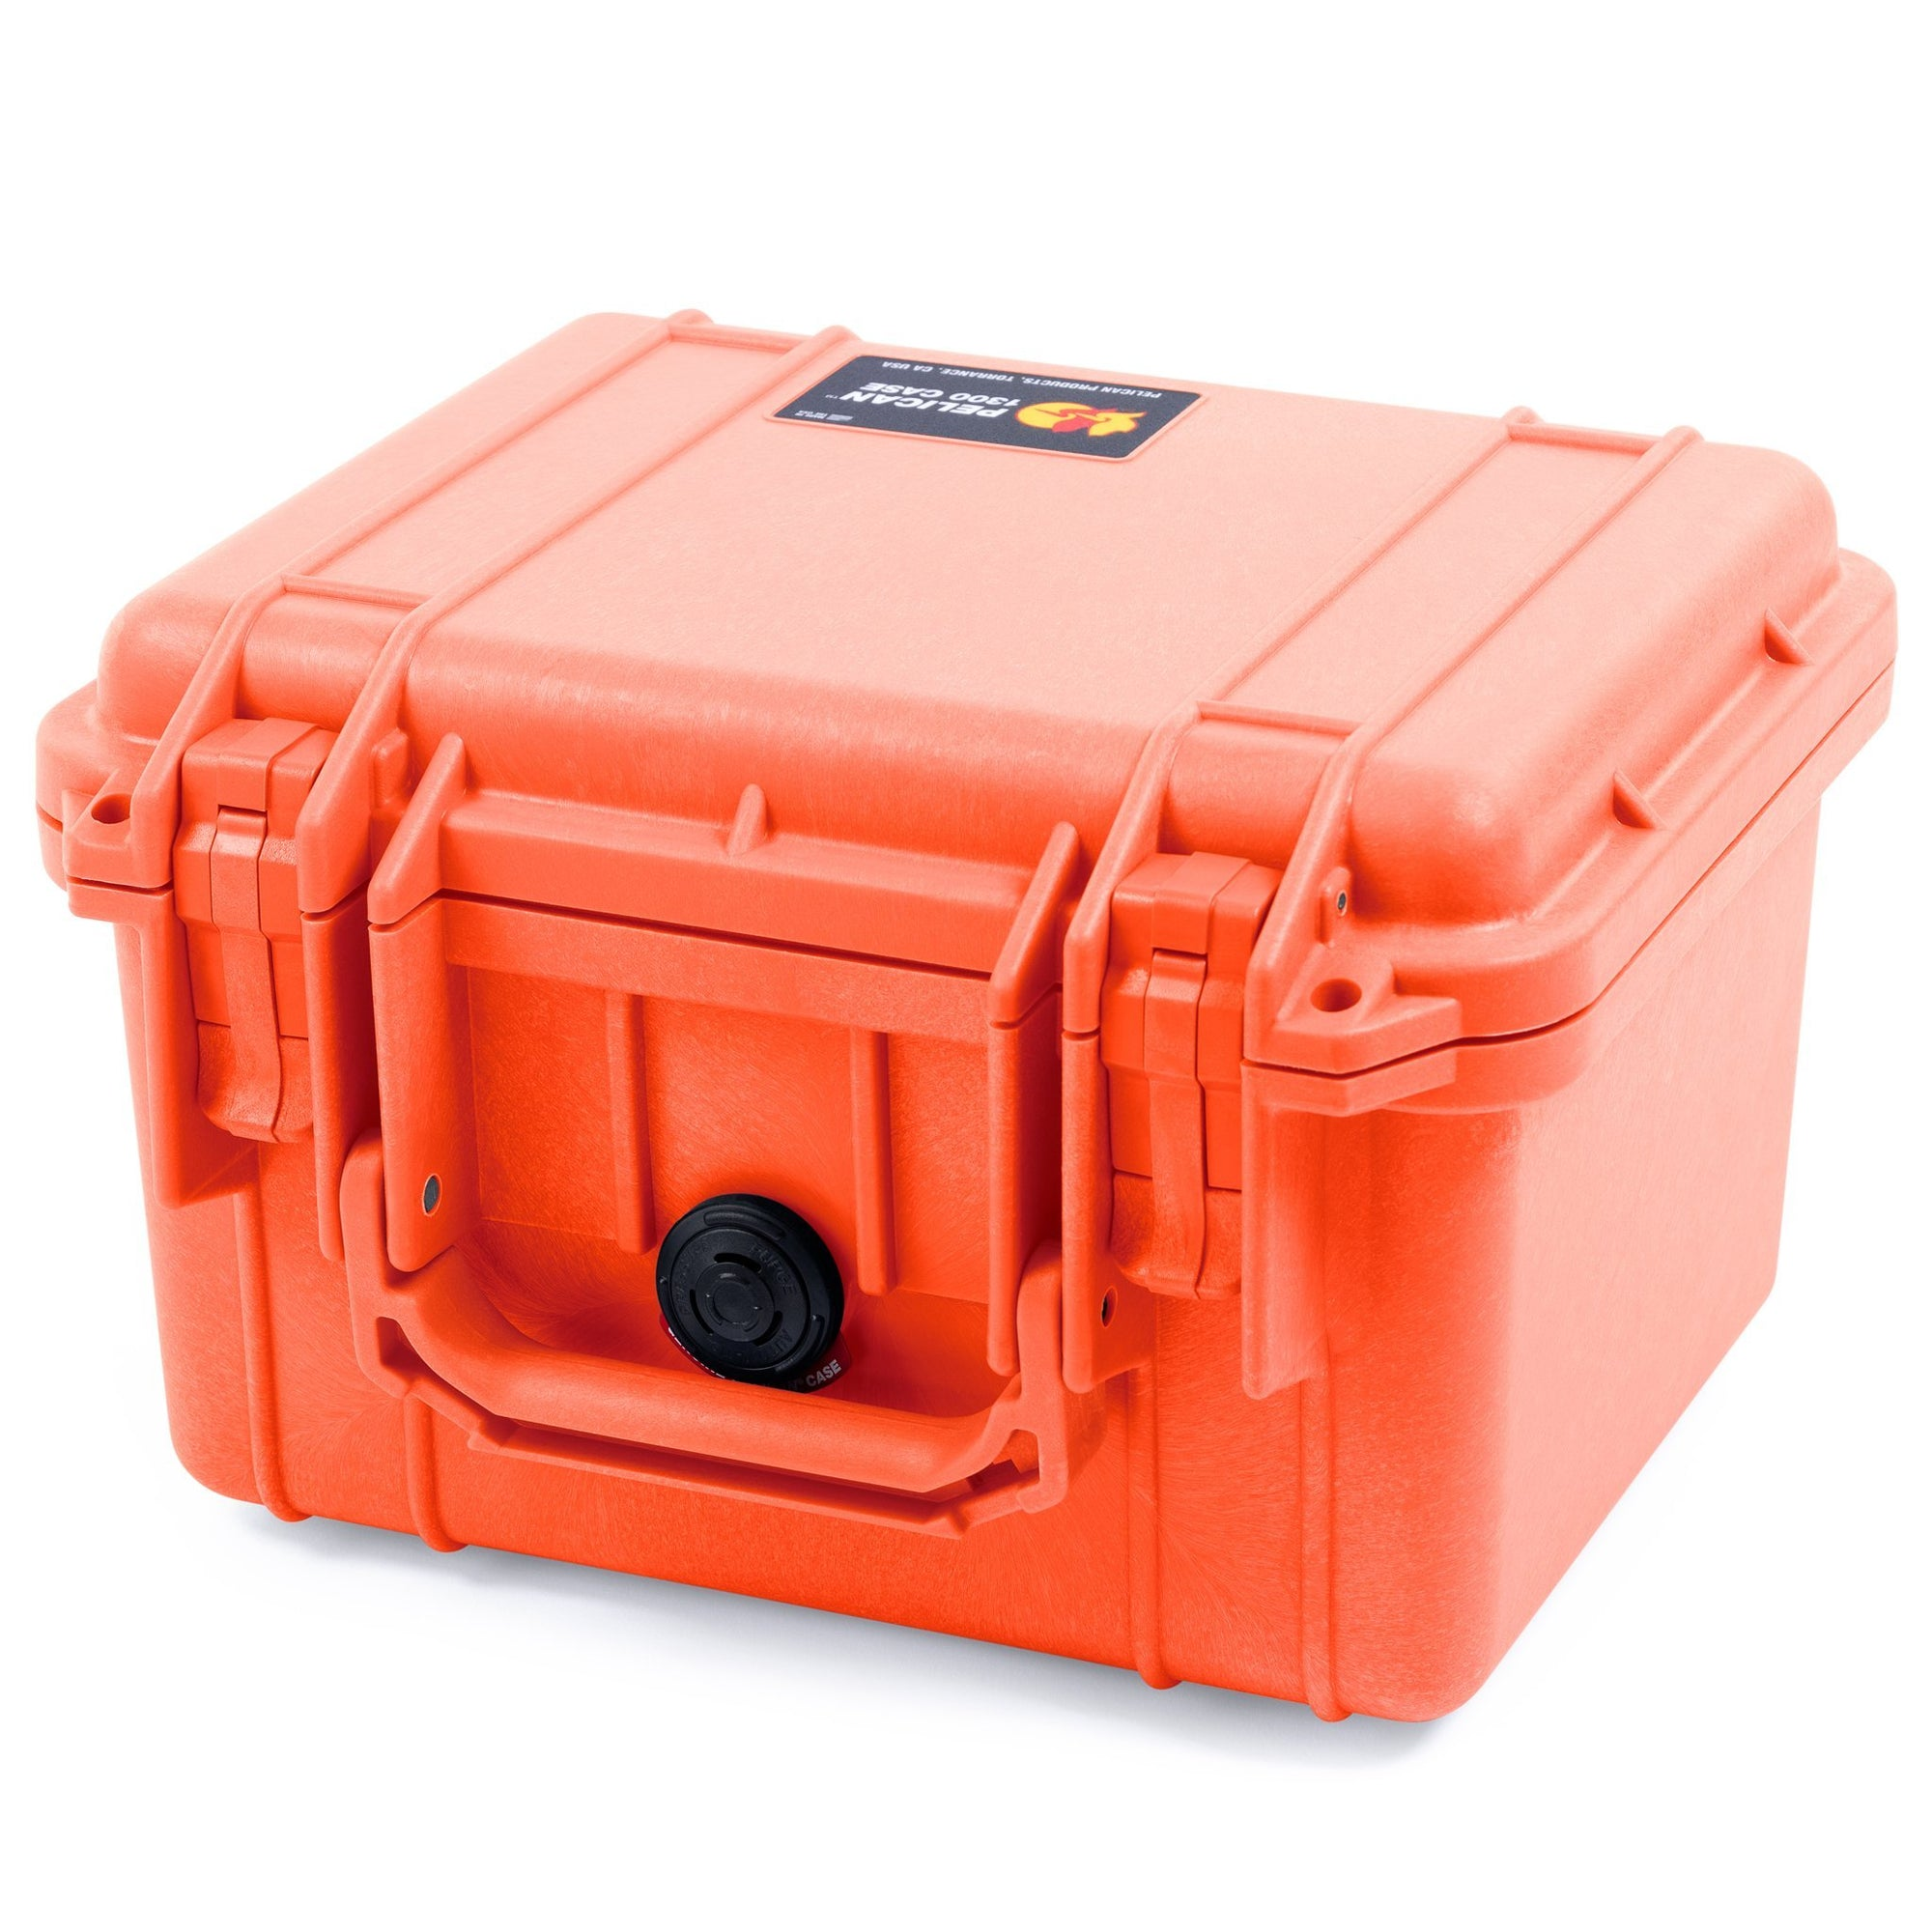 Pelican 1300 Case, Orange - Pelican Color Case